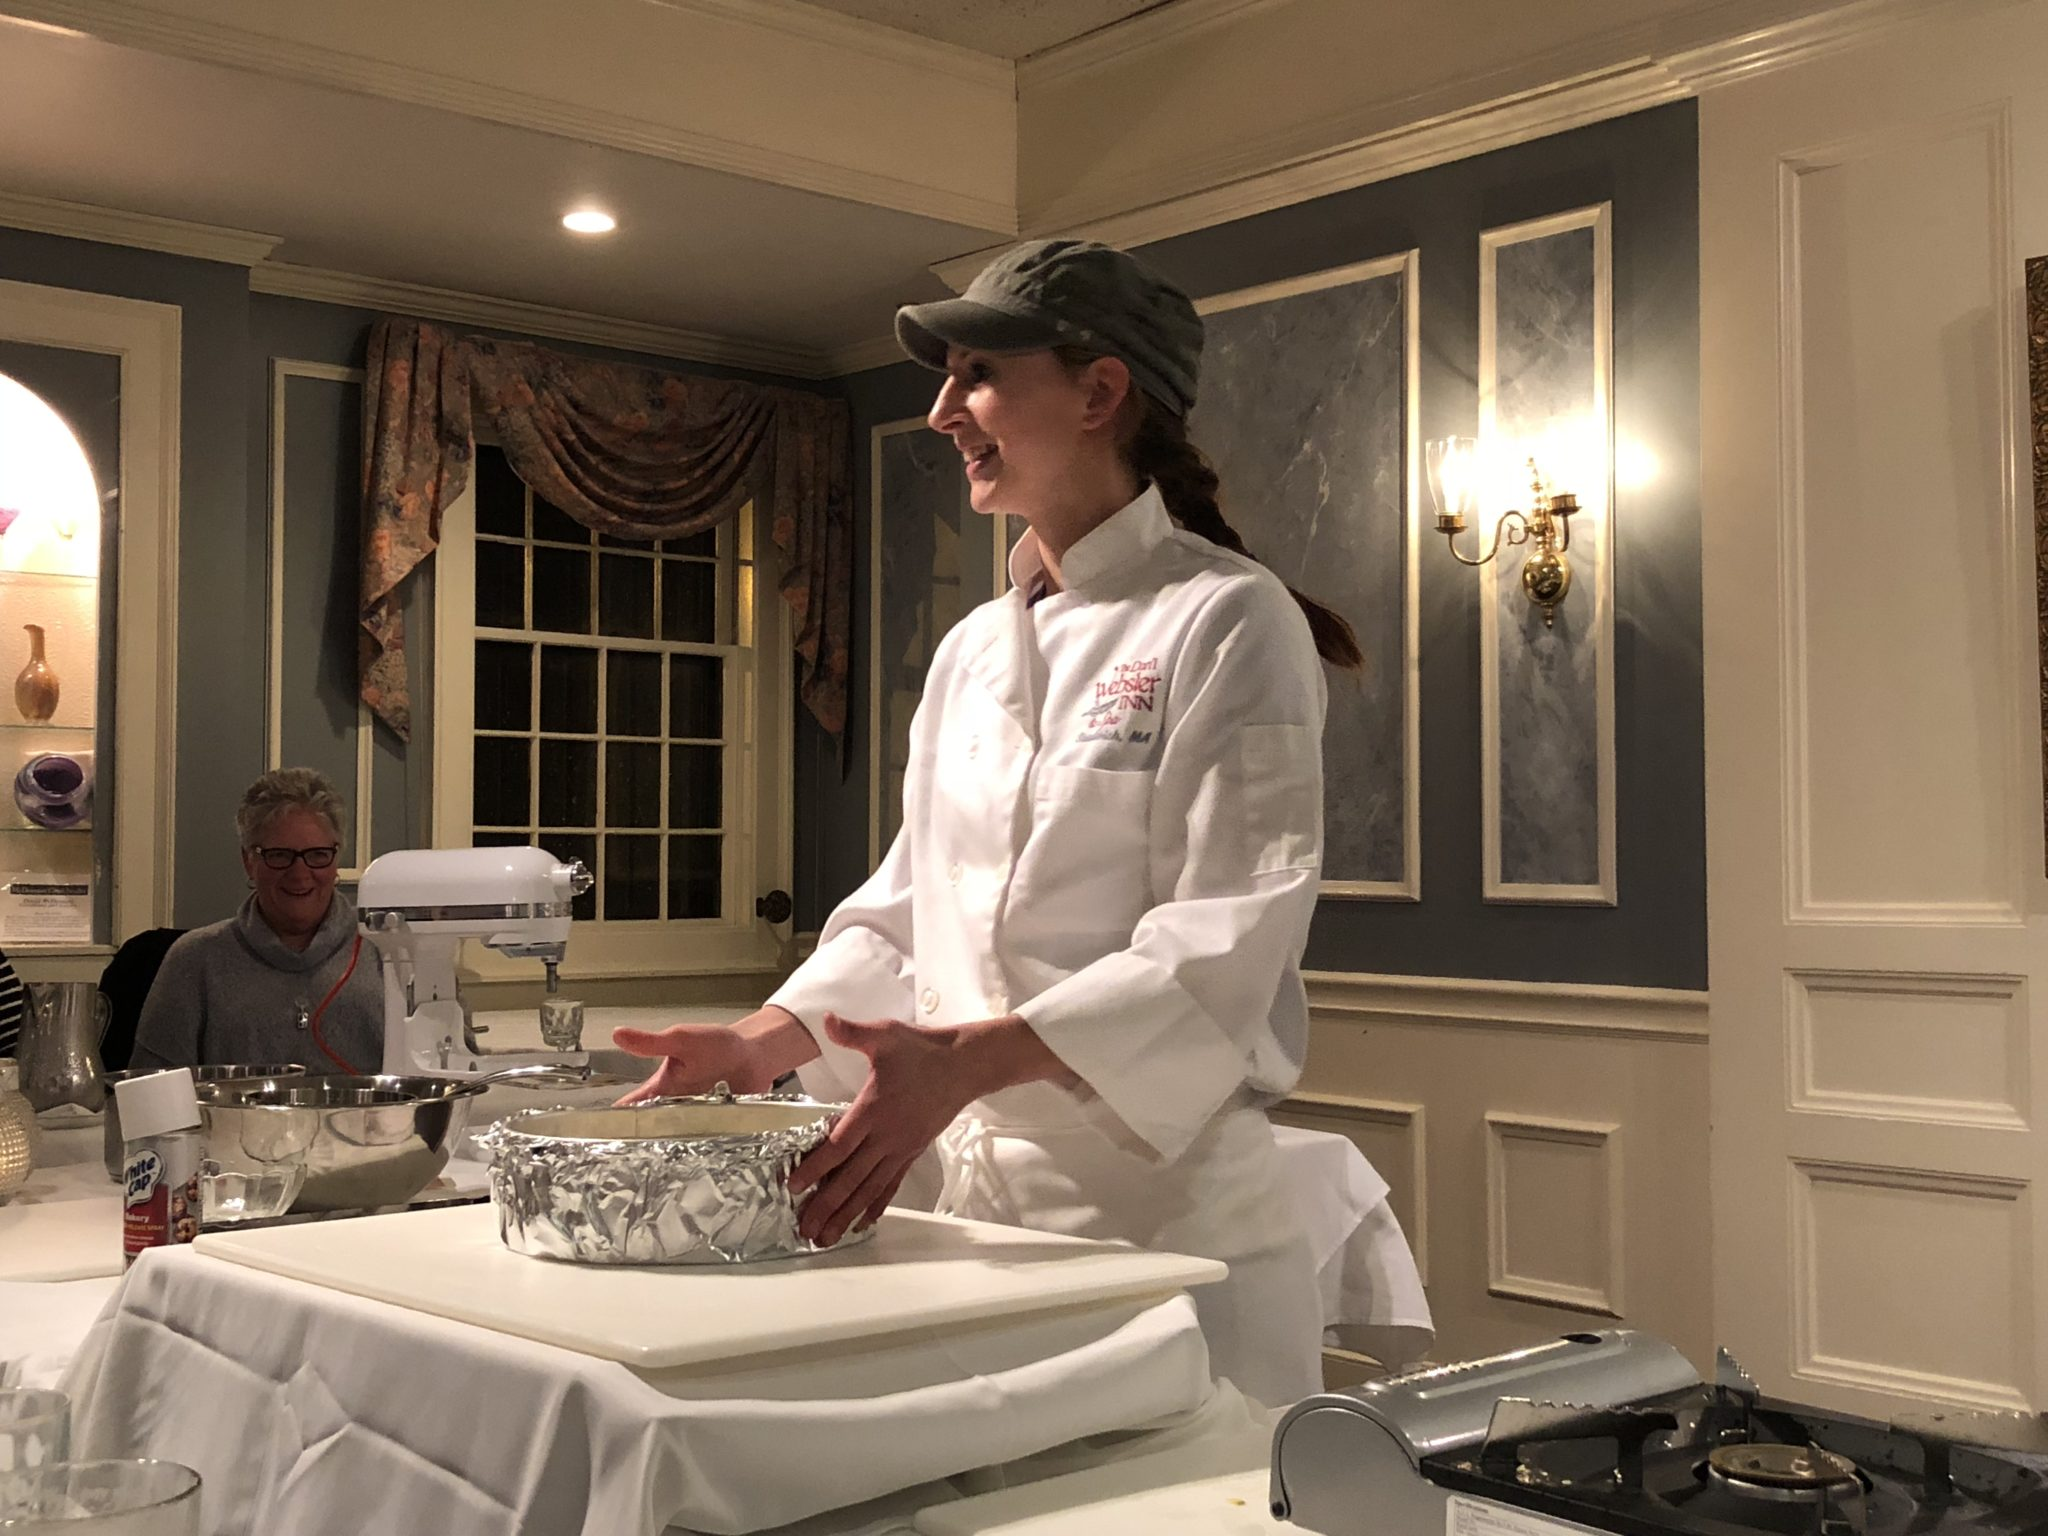 The Chef's Demonstration Table at the Dan'l Webster Inn is a unique entertainment experience. Enjoy a cooking lesson and a wonderful dinner all in one fun night out.